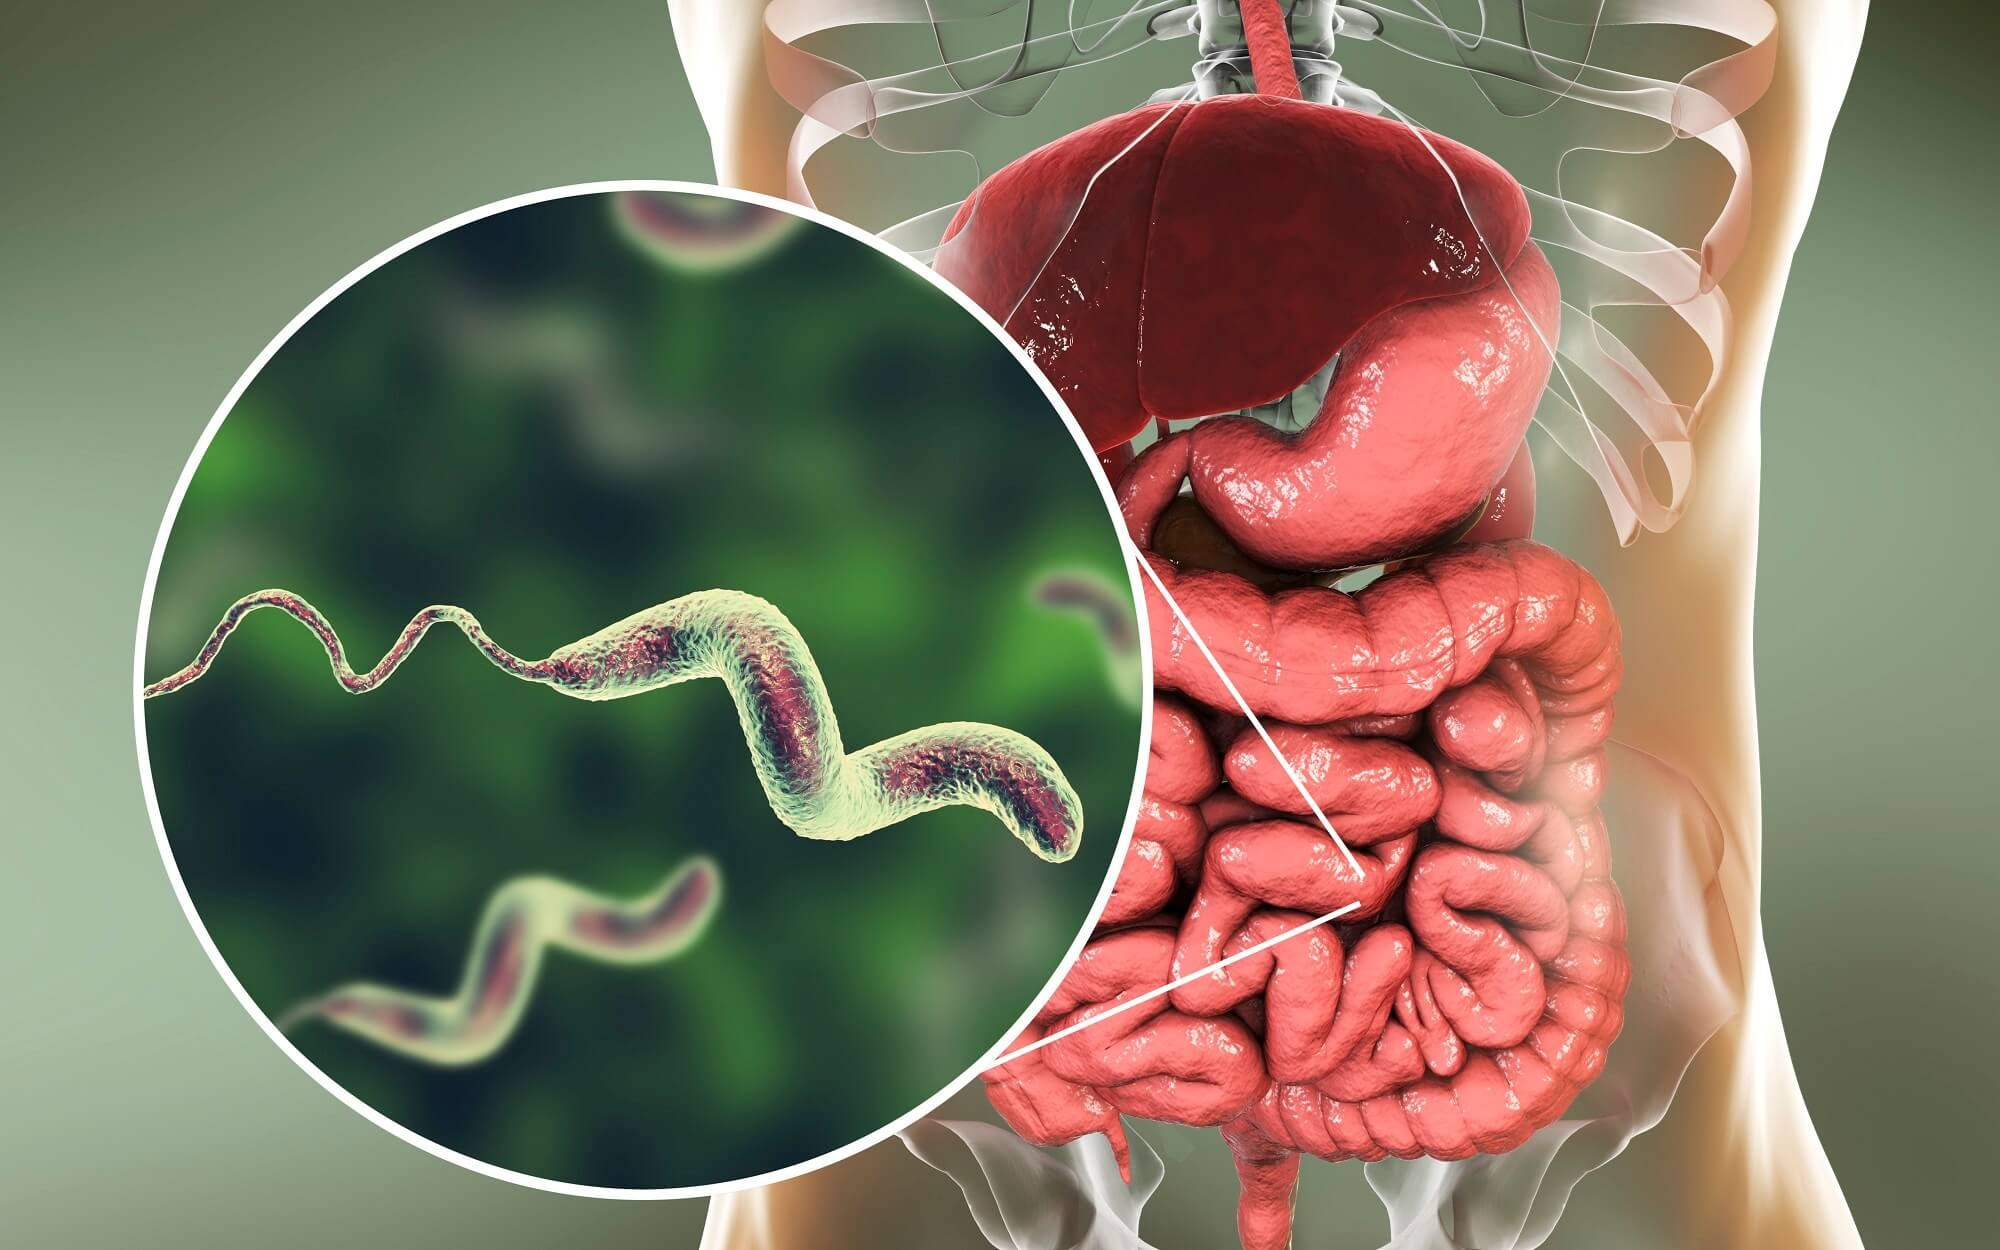 Diarrhea Remains Leading Cause of Global Mortality and Morbidity